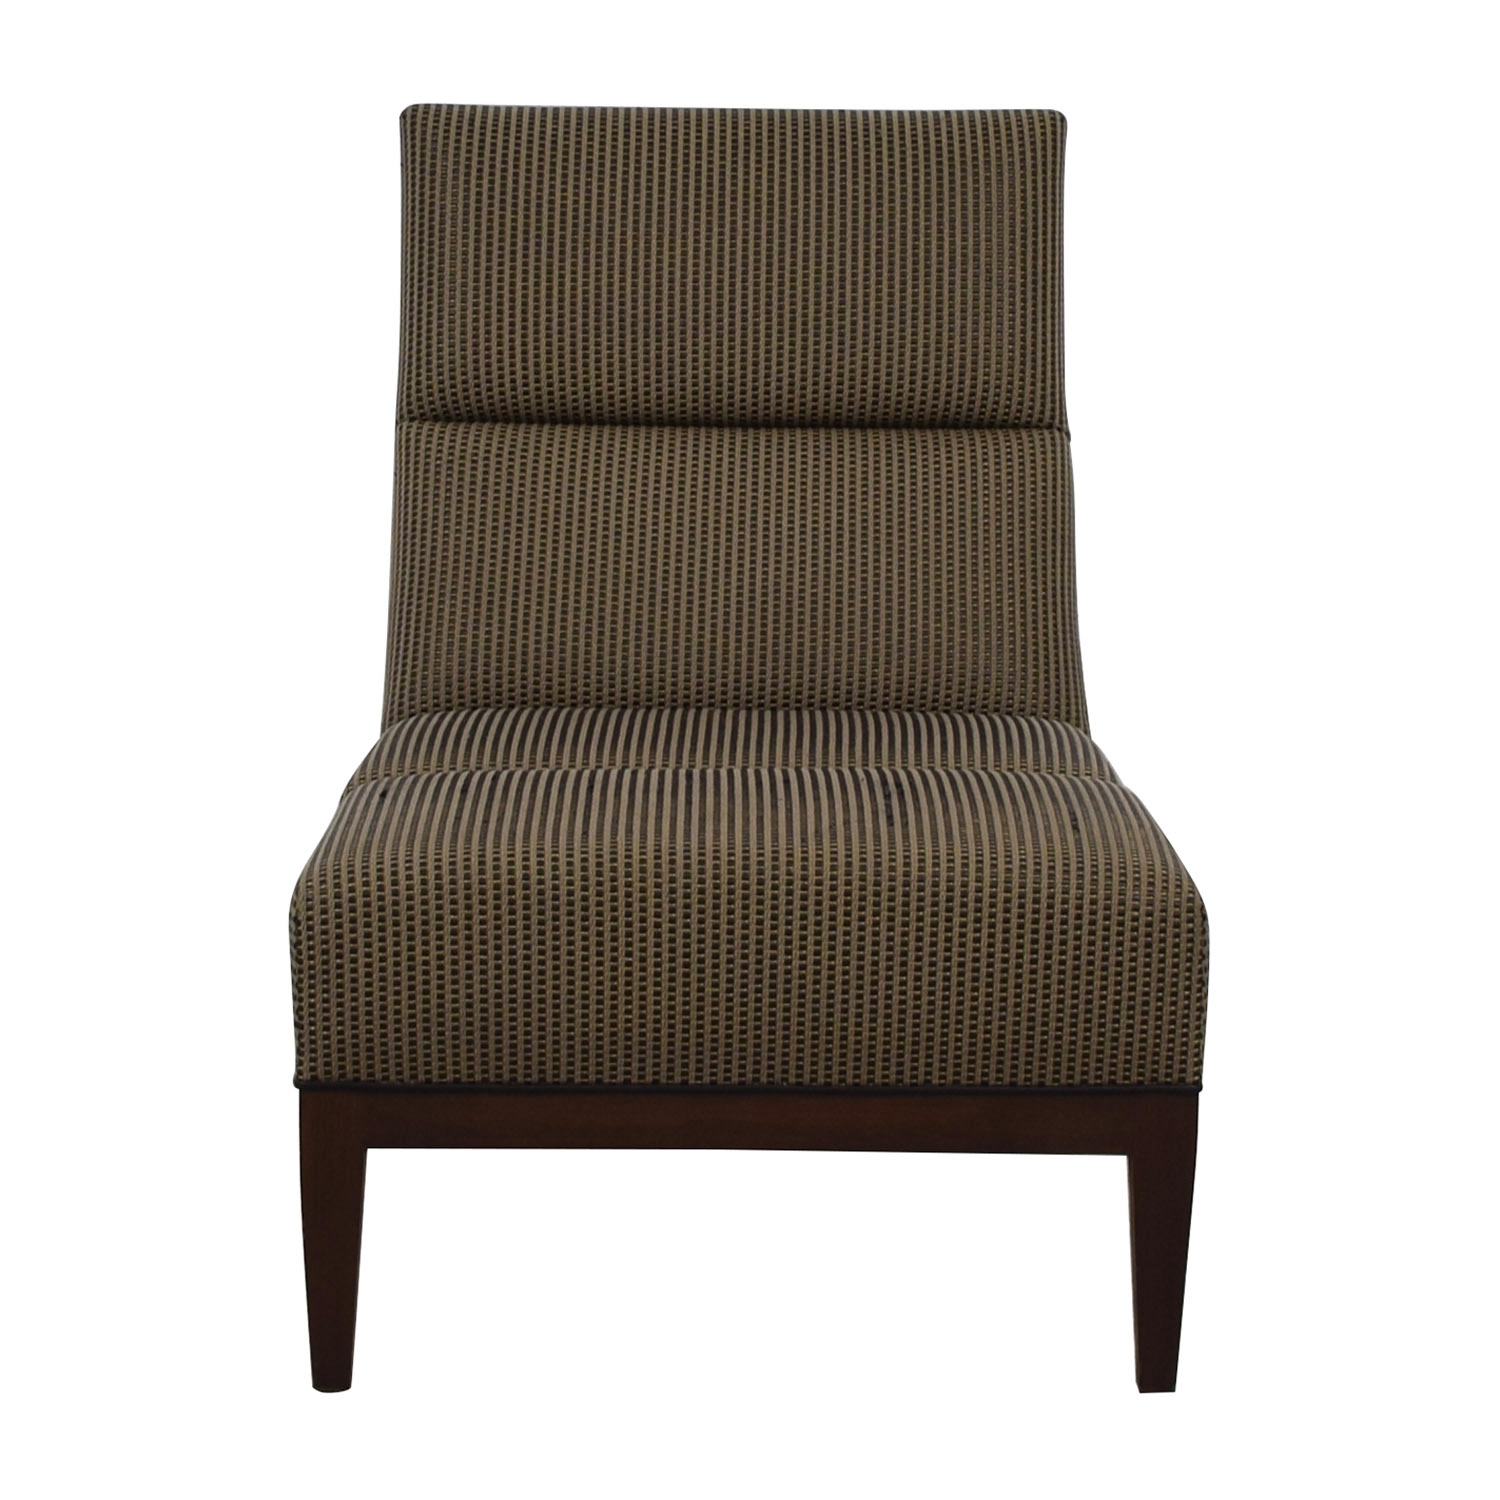 Furniture Masters Furniture Masters Brown Tweed Upholstered Accent Chair Accent Chairs